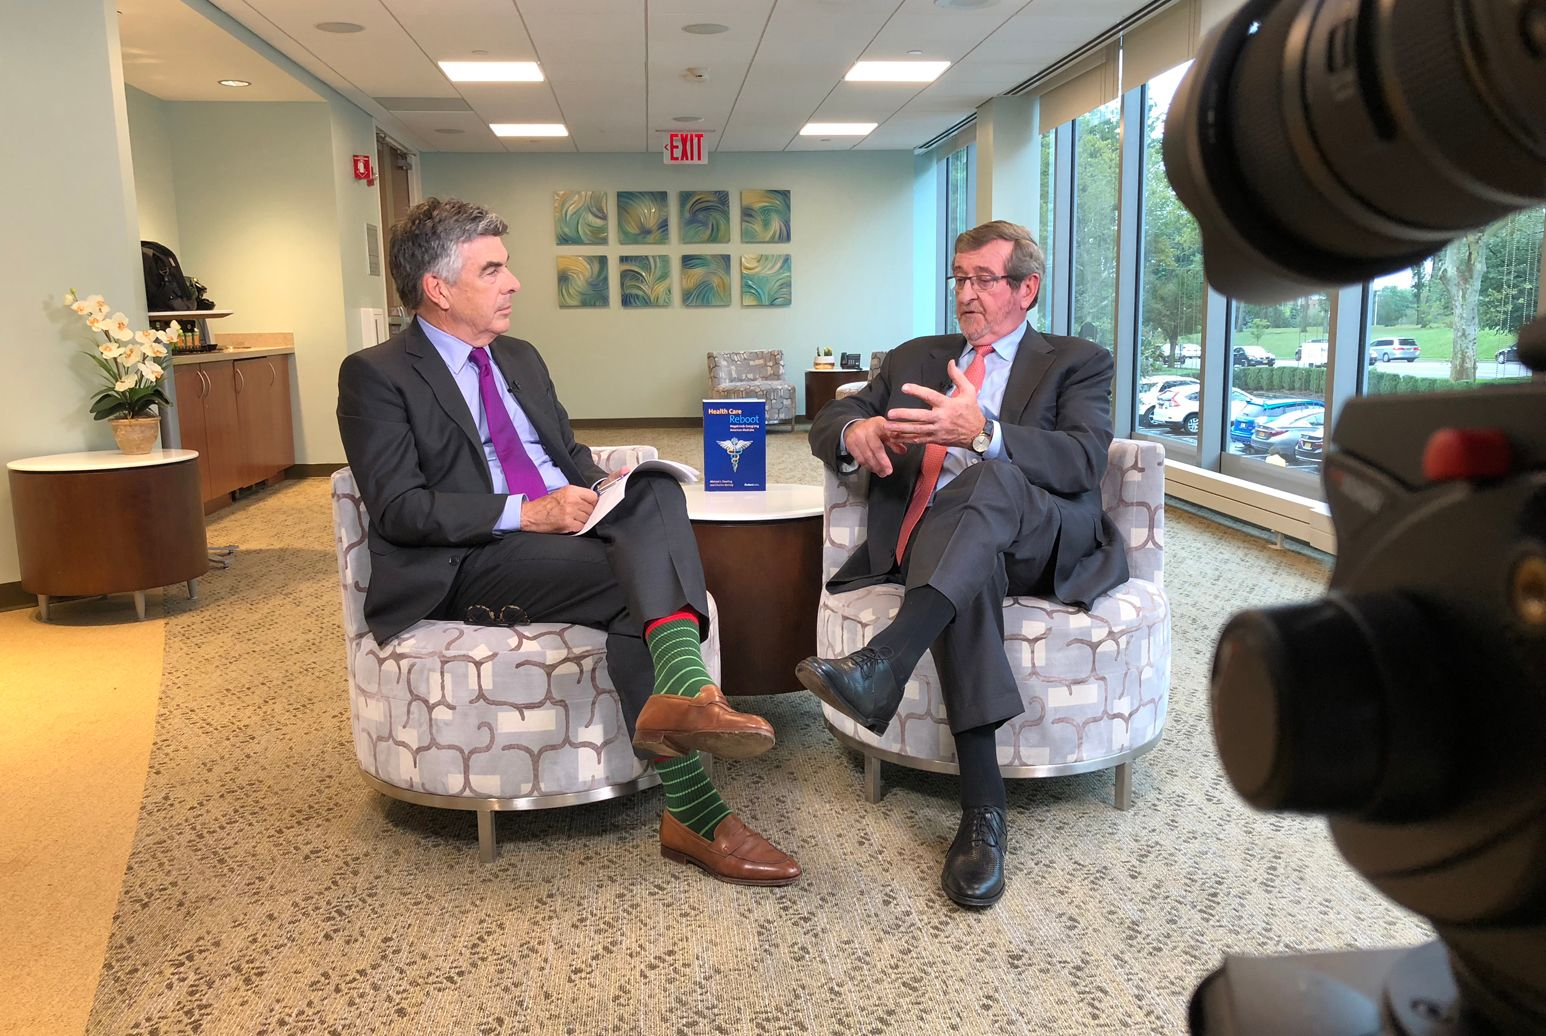 Charles Kenney (left) and Northwell Health President and CEO Michael Dowling discuss the release of their new book Health Care Reboot: Megatrends Energizing American Medicine